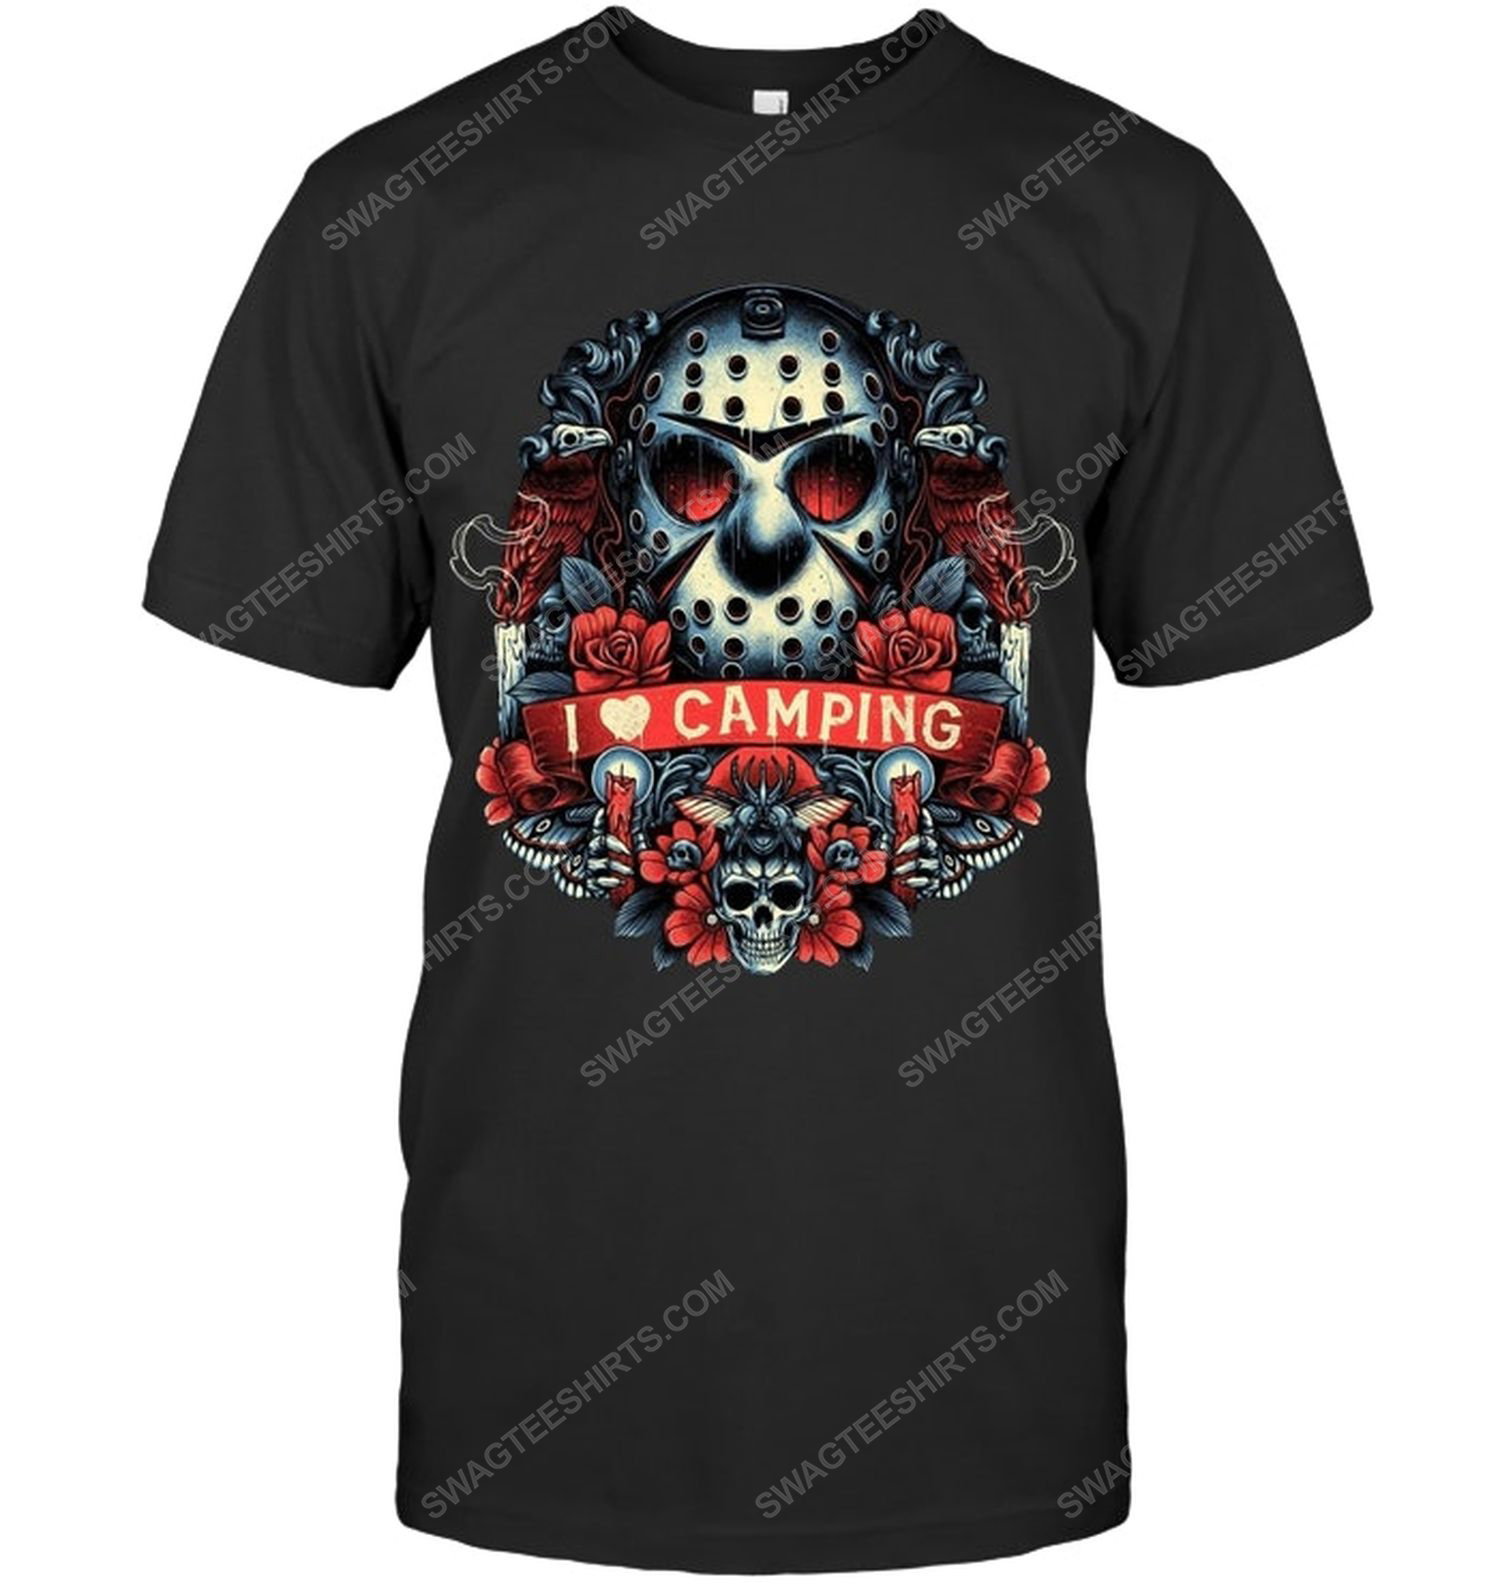 Jason voorhees i love camping for halloween shirt 1